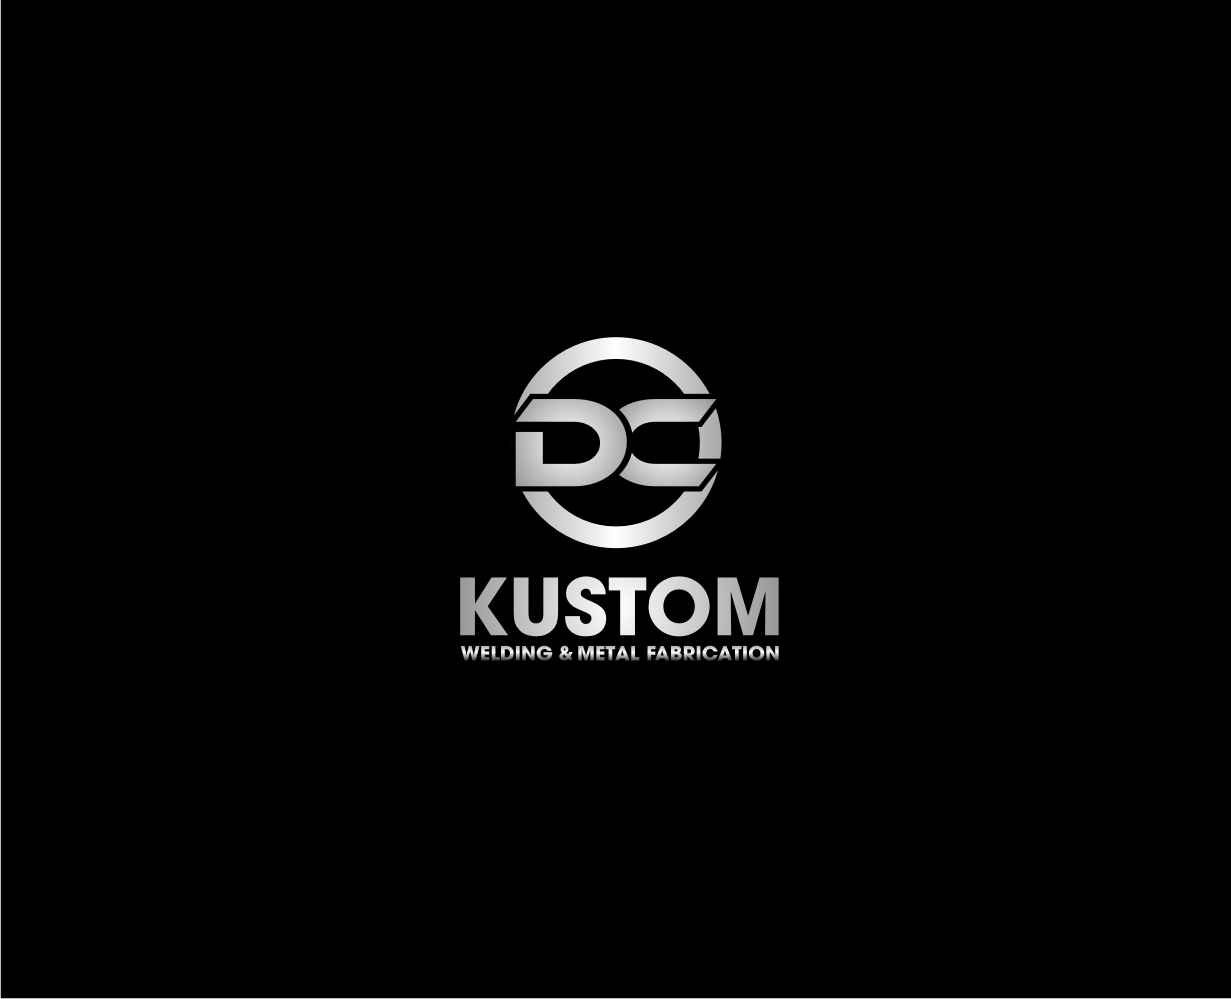 Logo Design by Khoirul Khoirul bejo - Entry No. 80 in the Logo Design Contest Imaginative Logo Design for DC KUSTOM WELDING & METAL FABRICATION.